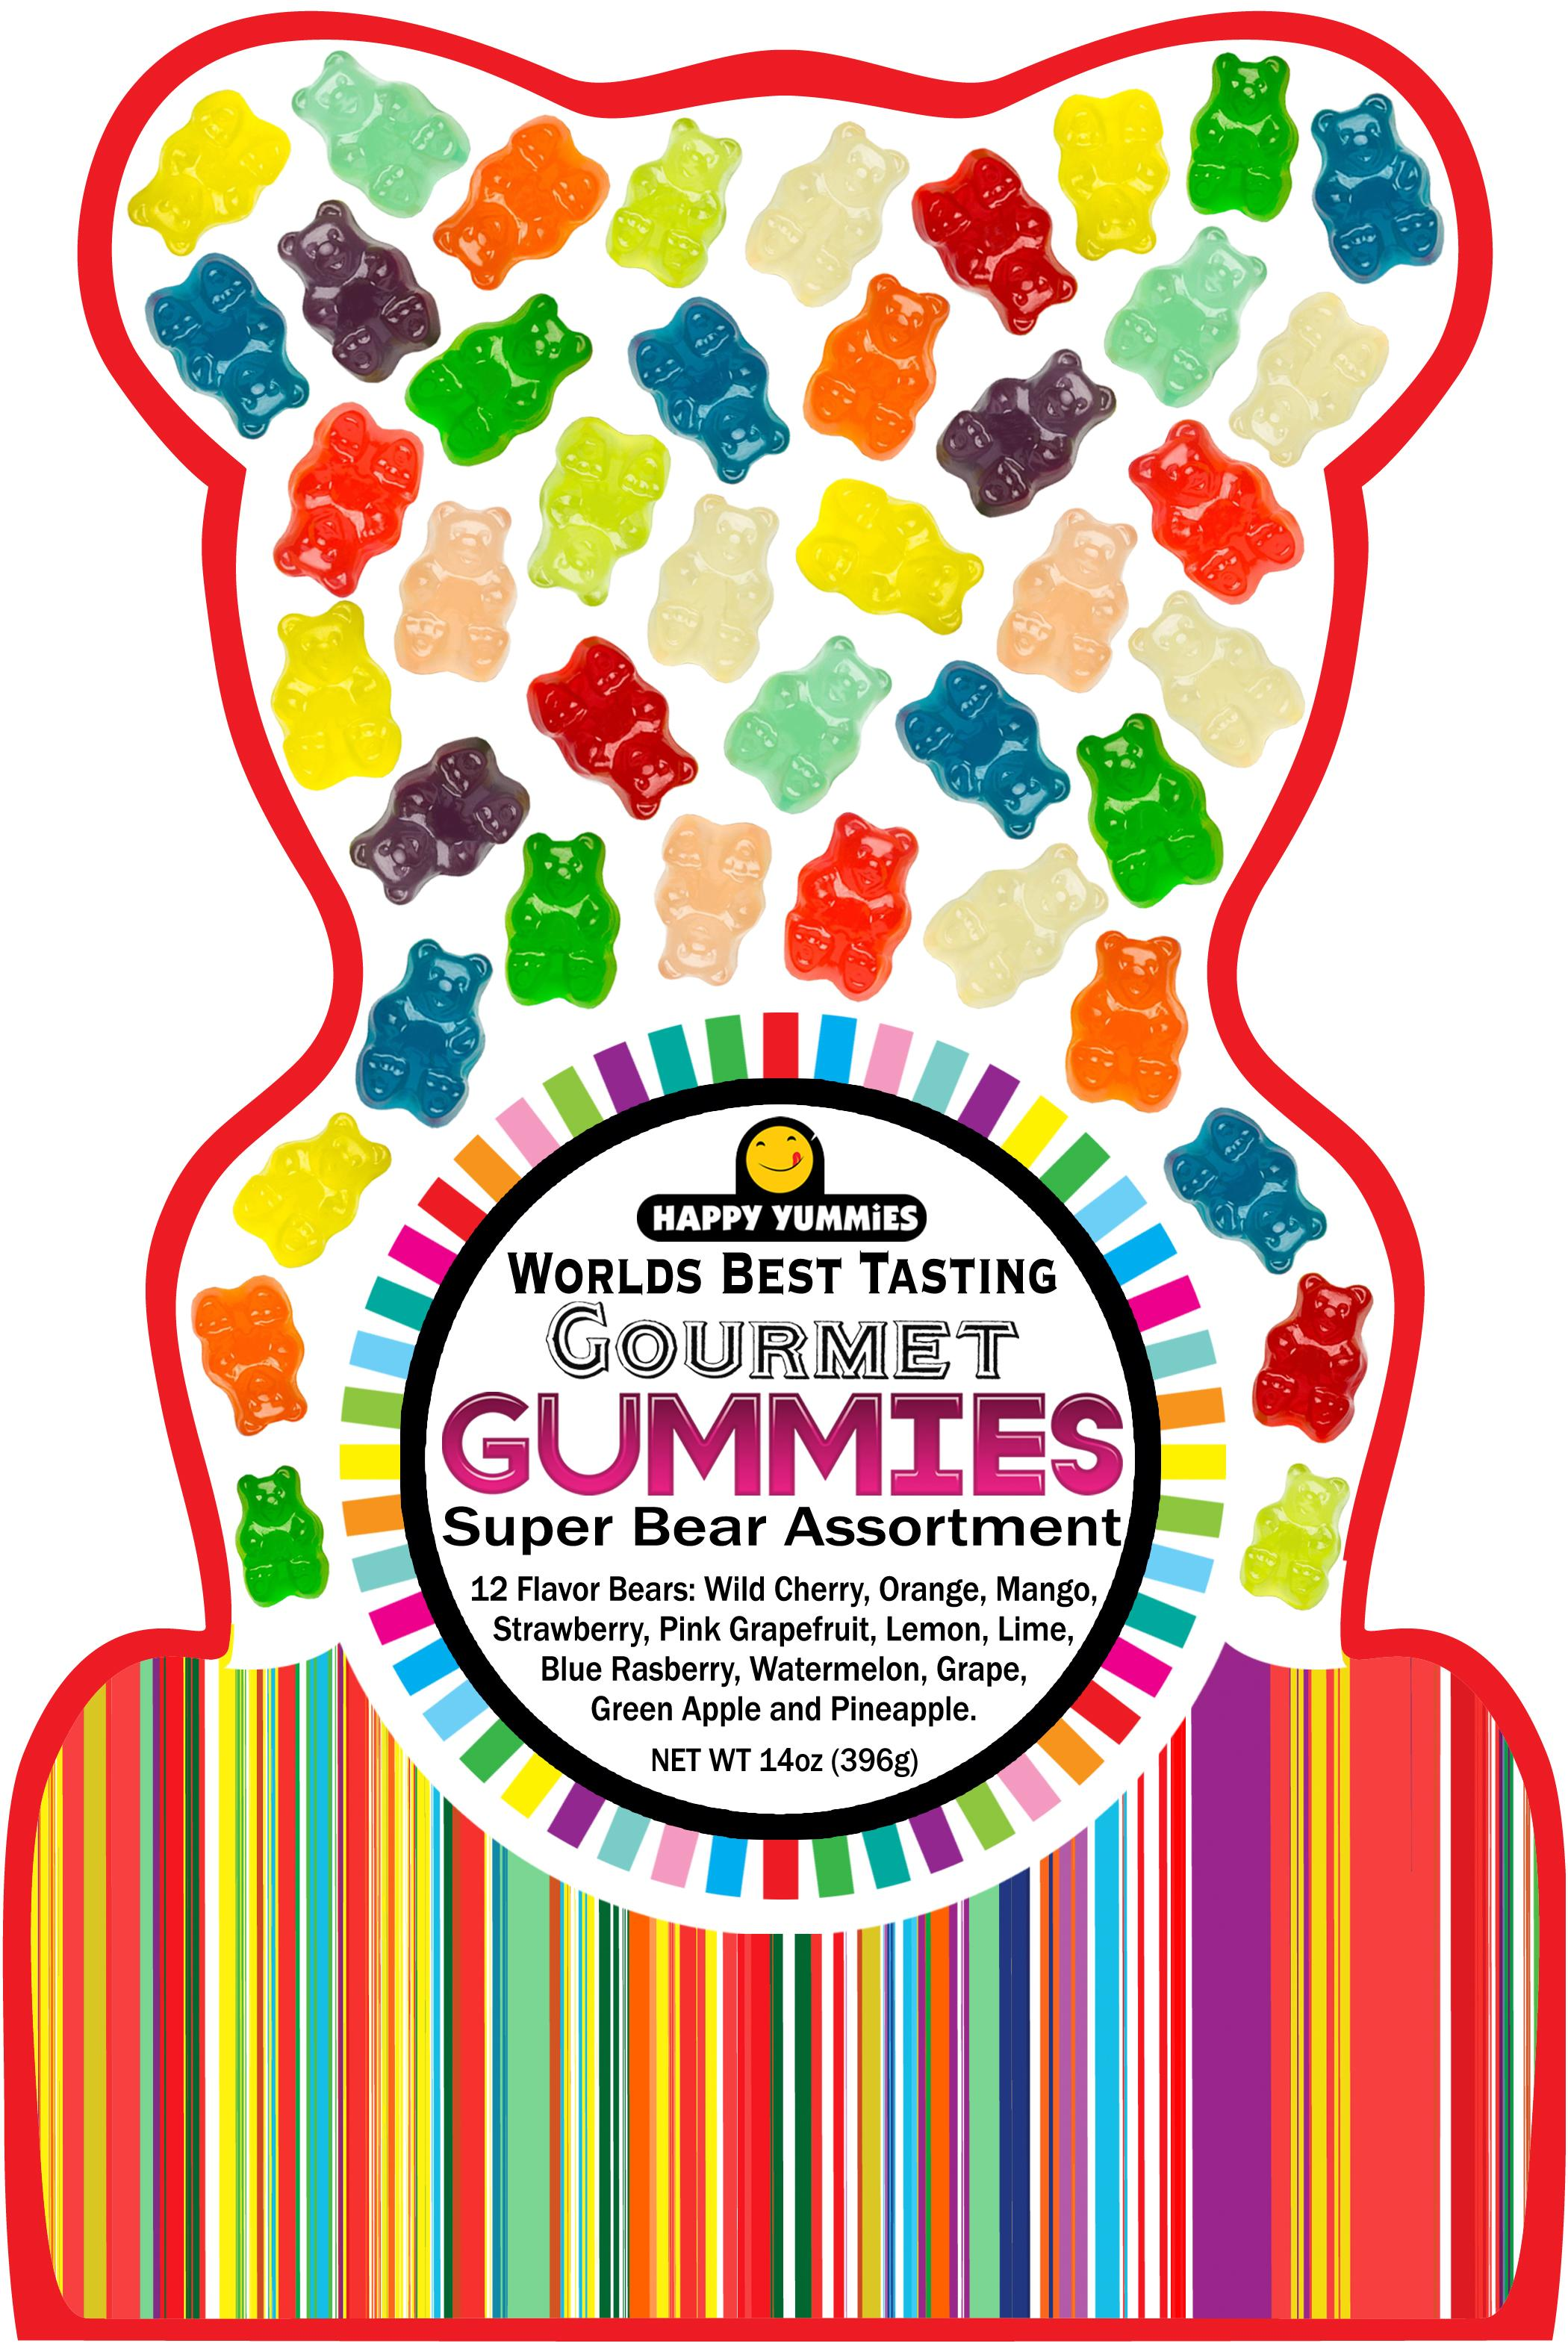 Happy Yummies worlds best tasting gummies